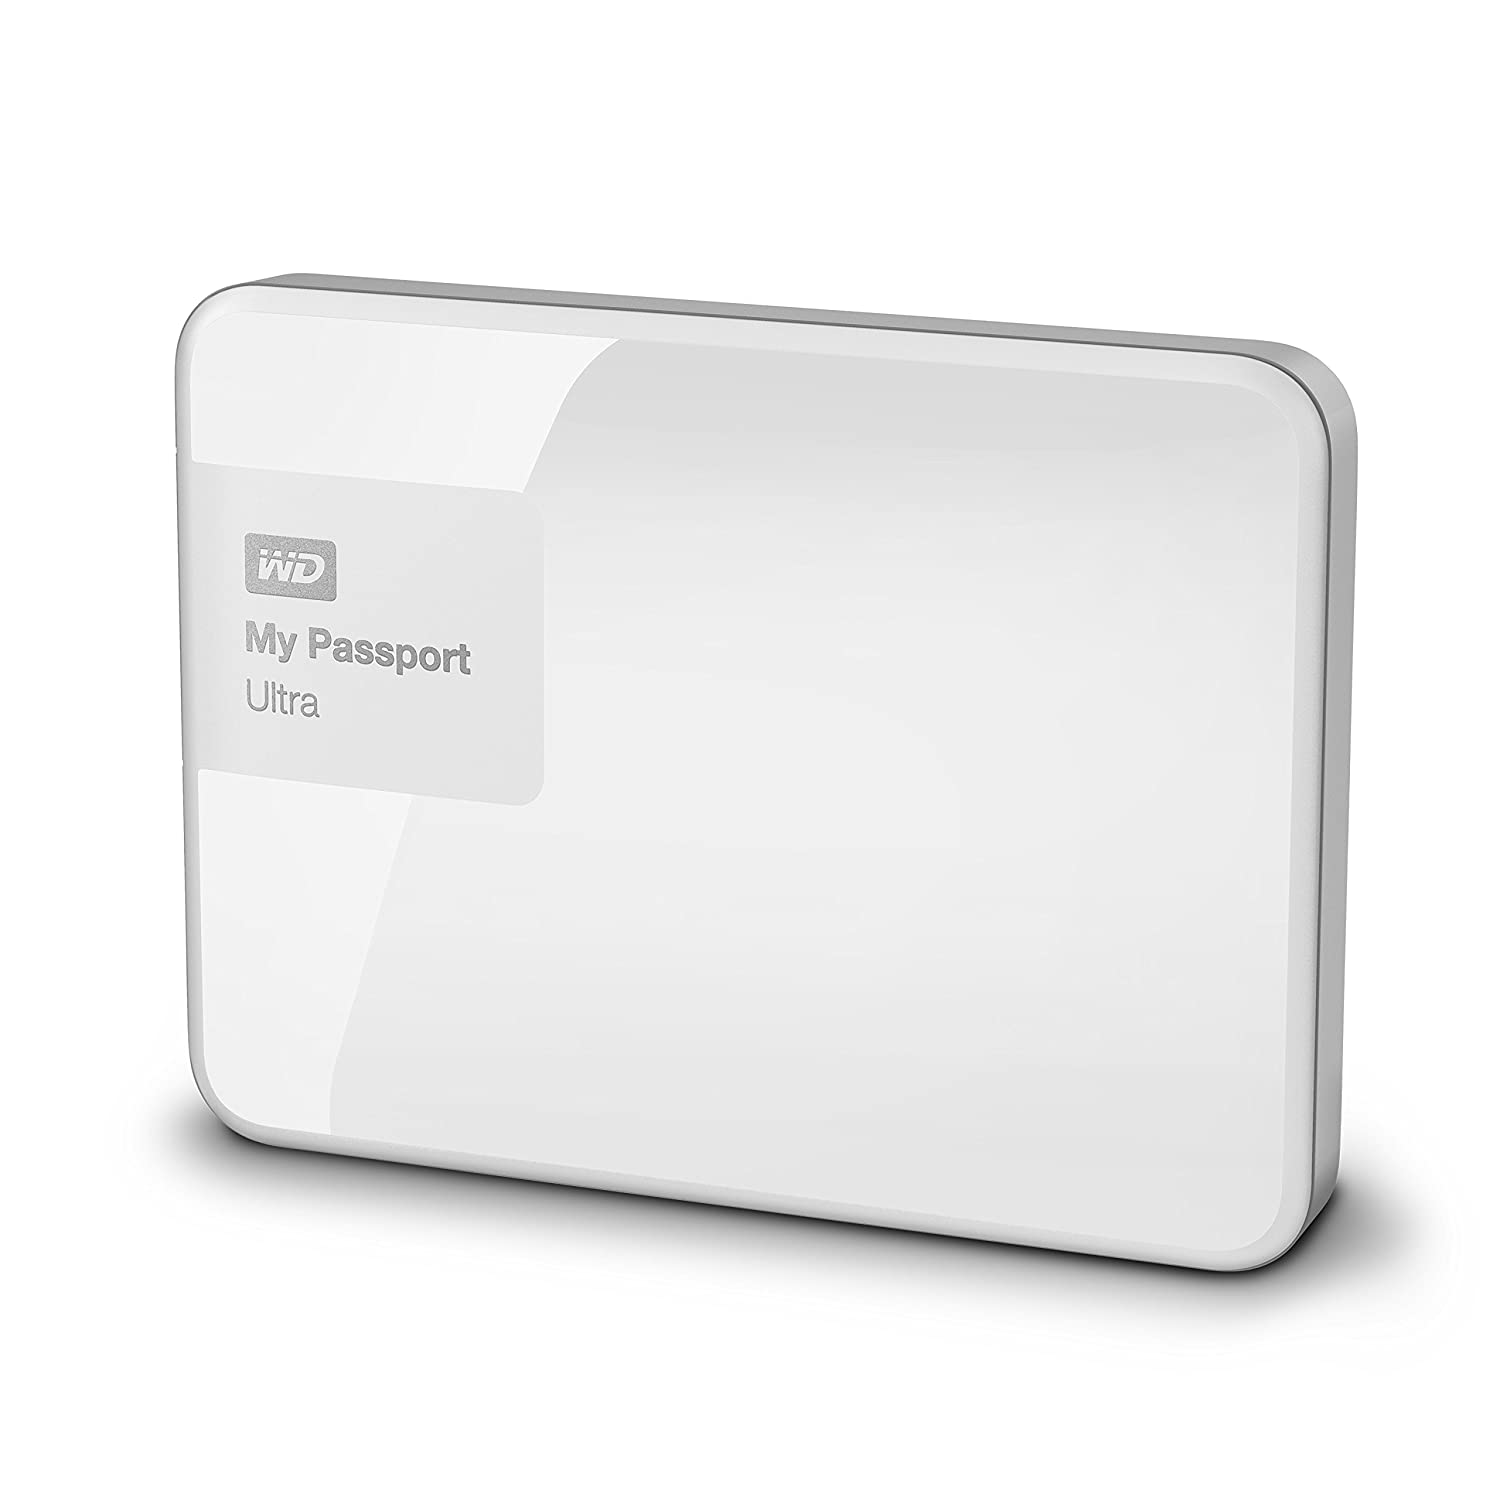 Wd 1tb White My Passport Ultra Portable External Hard Drive Usb 30 Wdbgpu0010bwt Eesn Computers Accessories